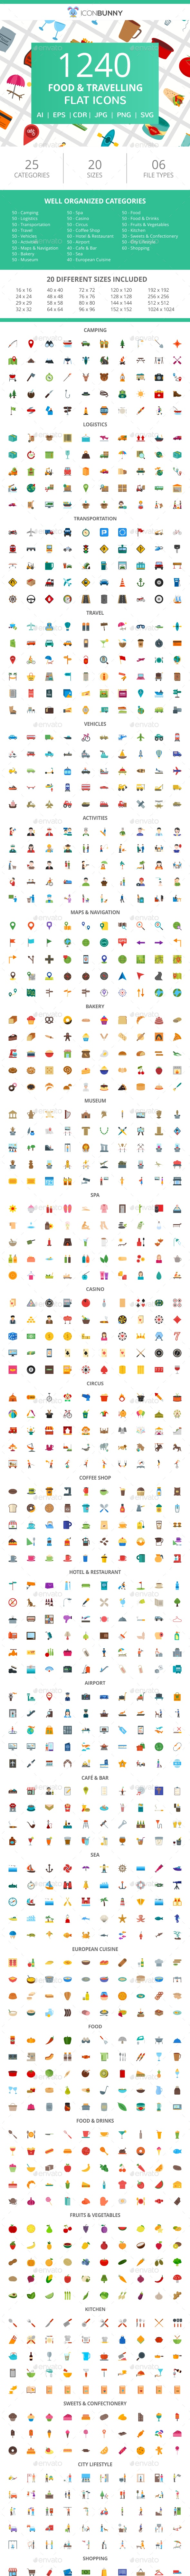 1240 Food & Travelling Flat Icons - Icons